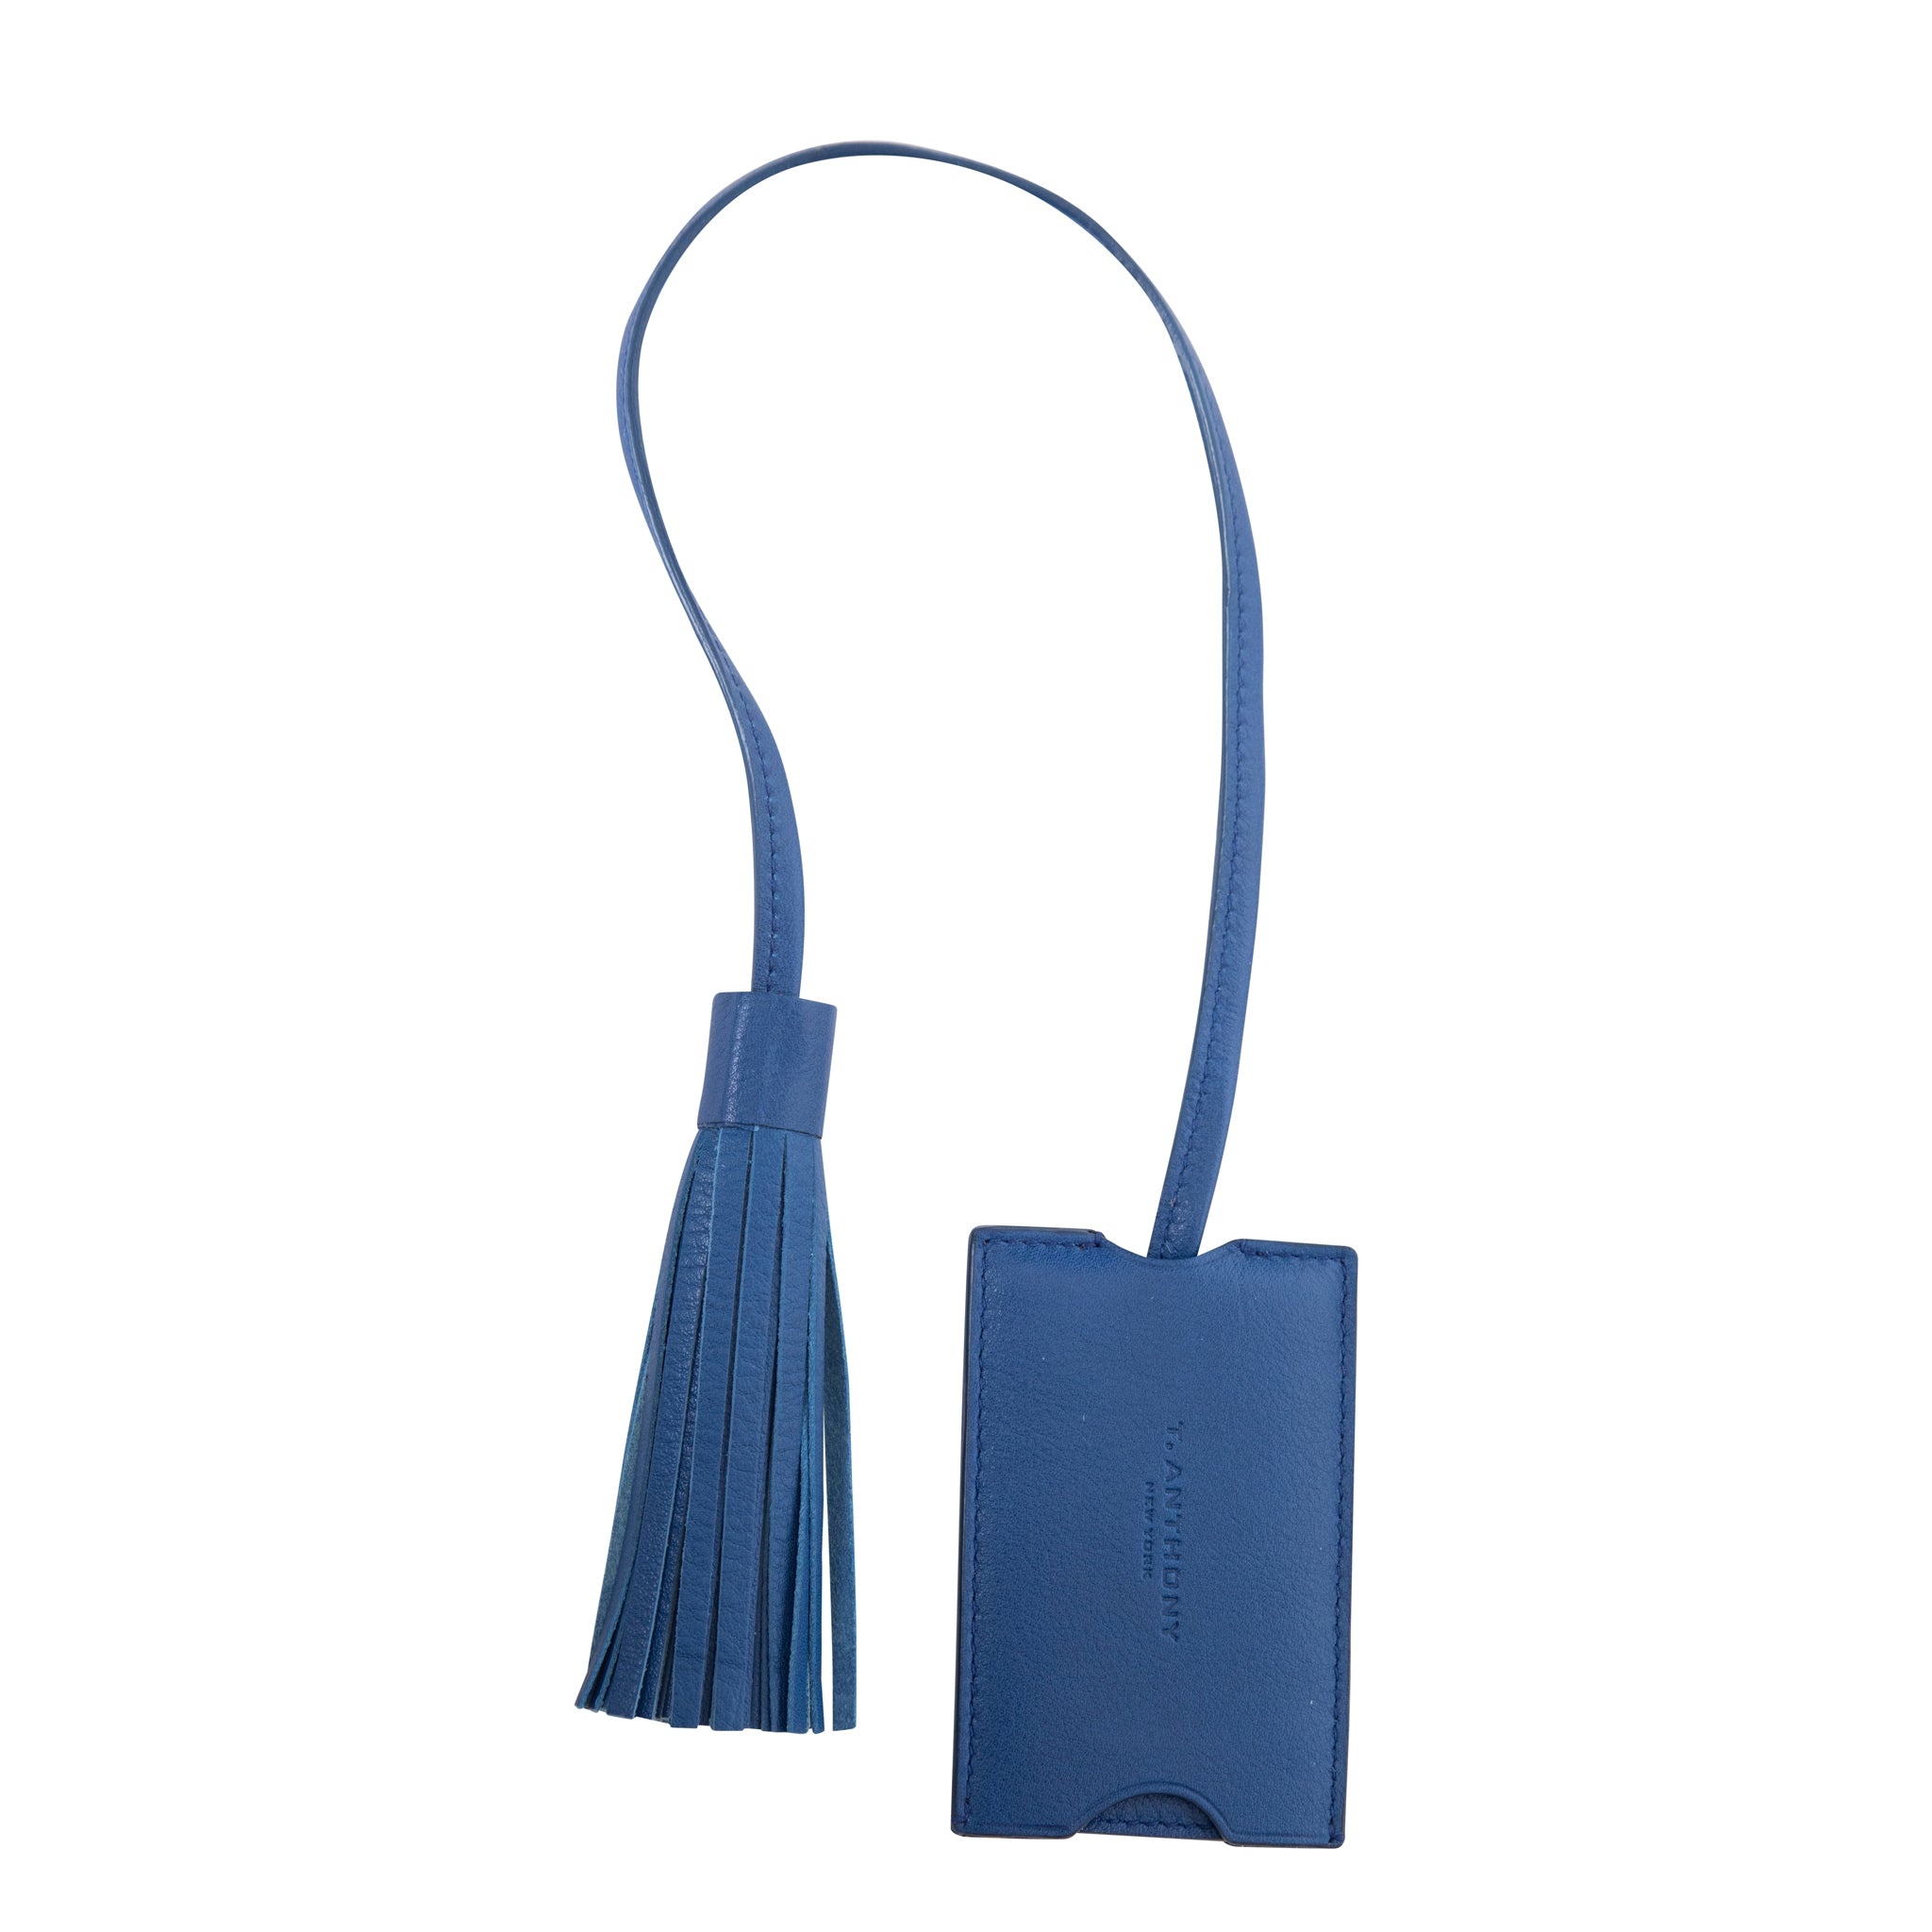 LEATHER LUGGAGE TAG WITH TASSEL